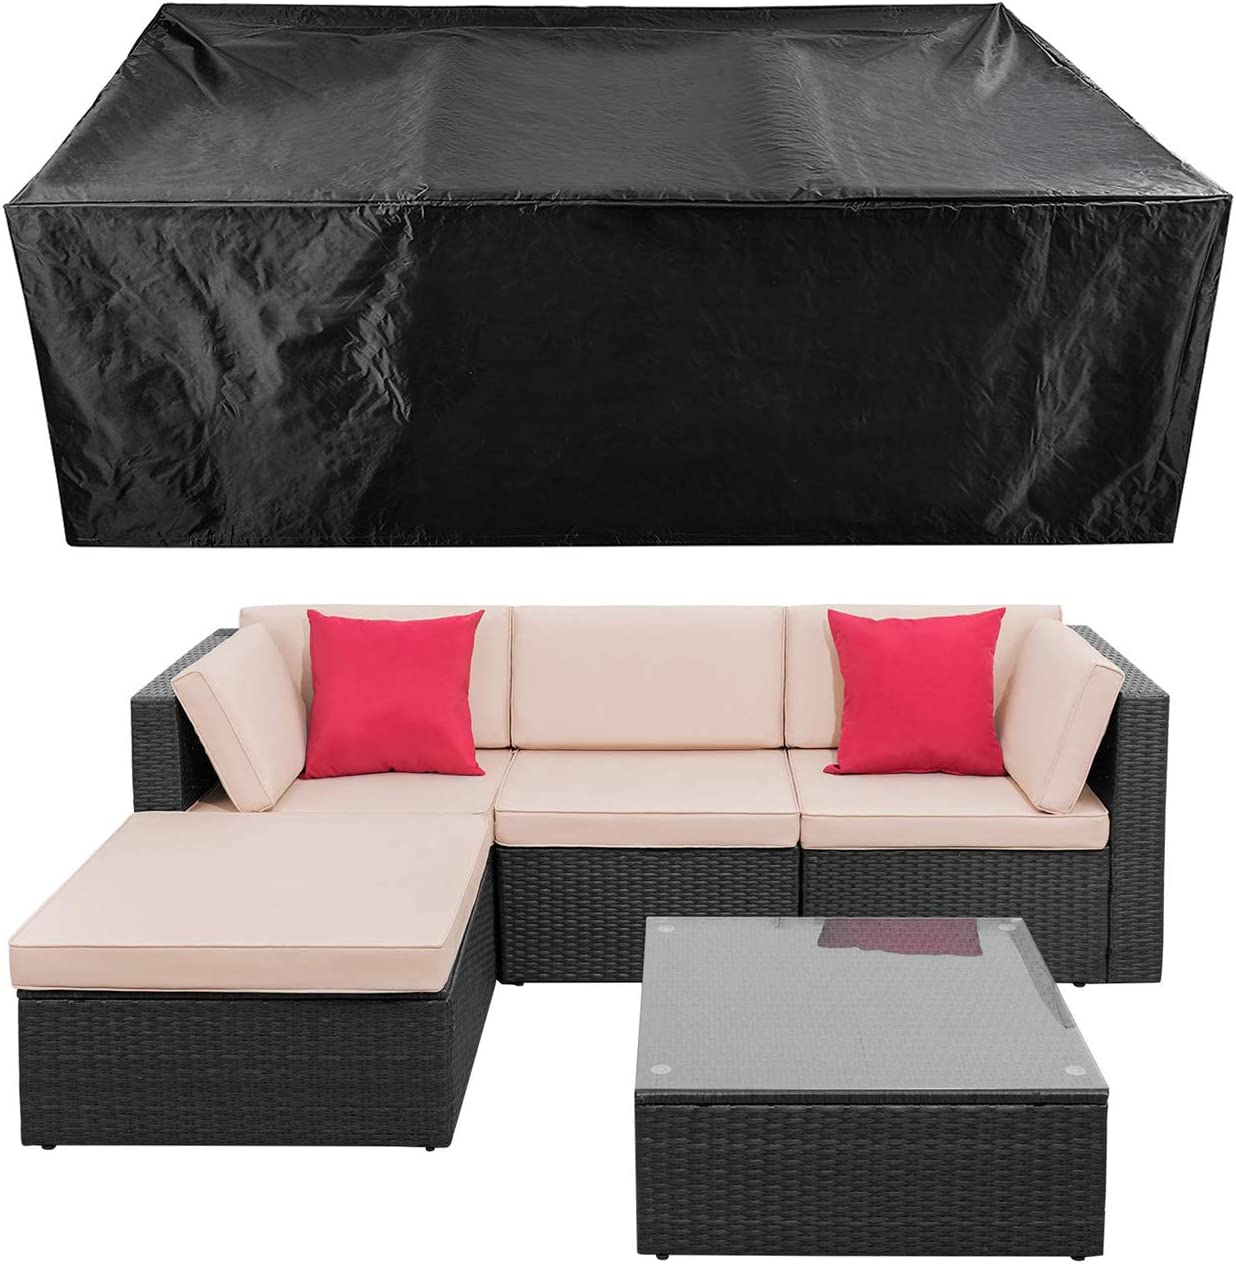 Patio Conversation Set Cover Patio Furniture Set Cover Outdoor Sectional Sofa Set Covers Waterproof Dining Table Chair Set Cover Heavy Duty 90